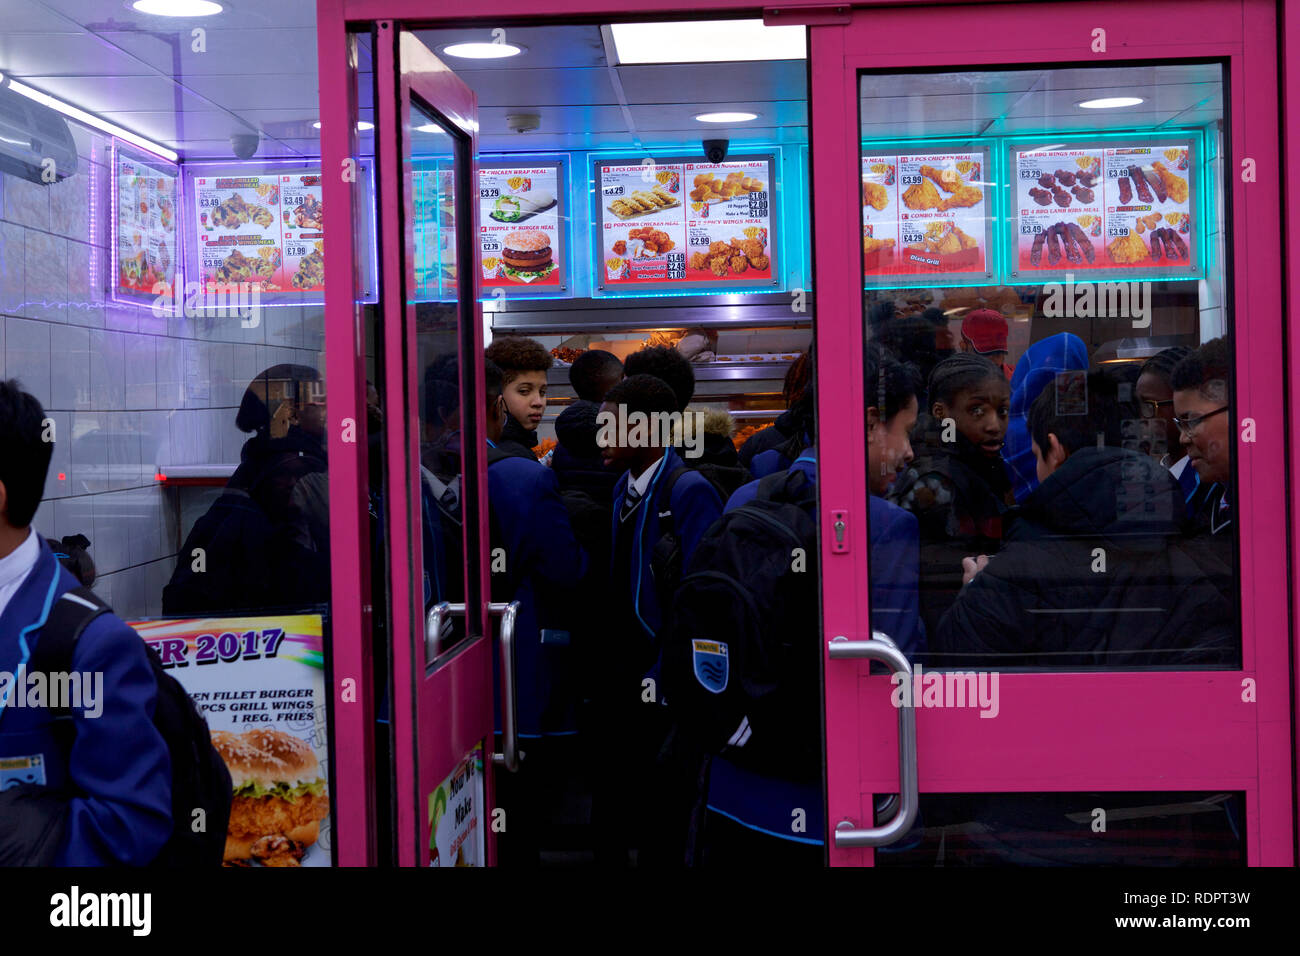 London, UK. 18th January 2019. School children after school in a fast food shop. - Stock Image